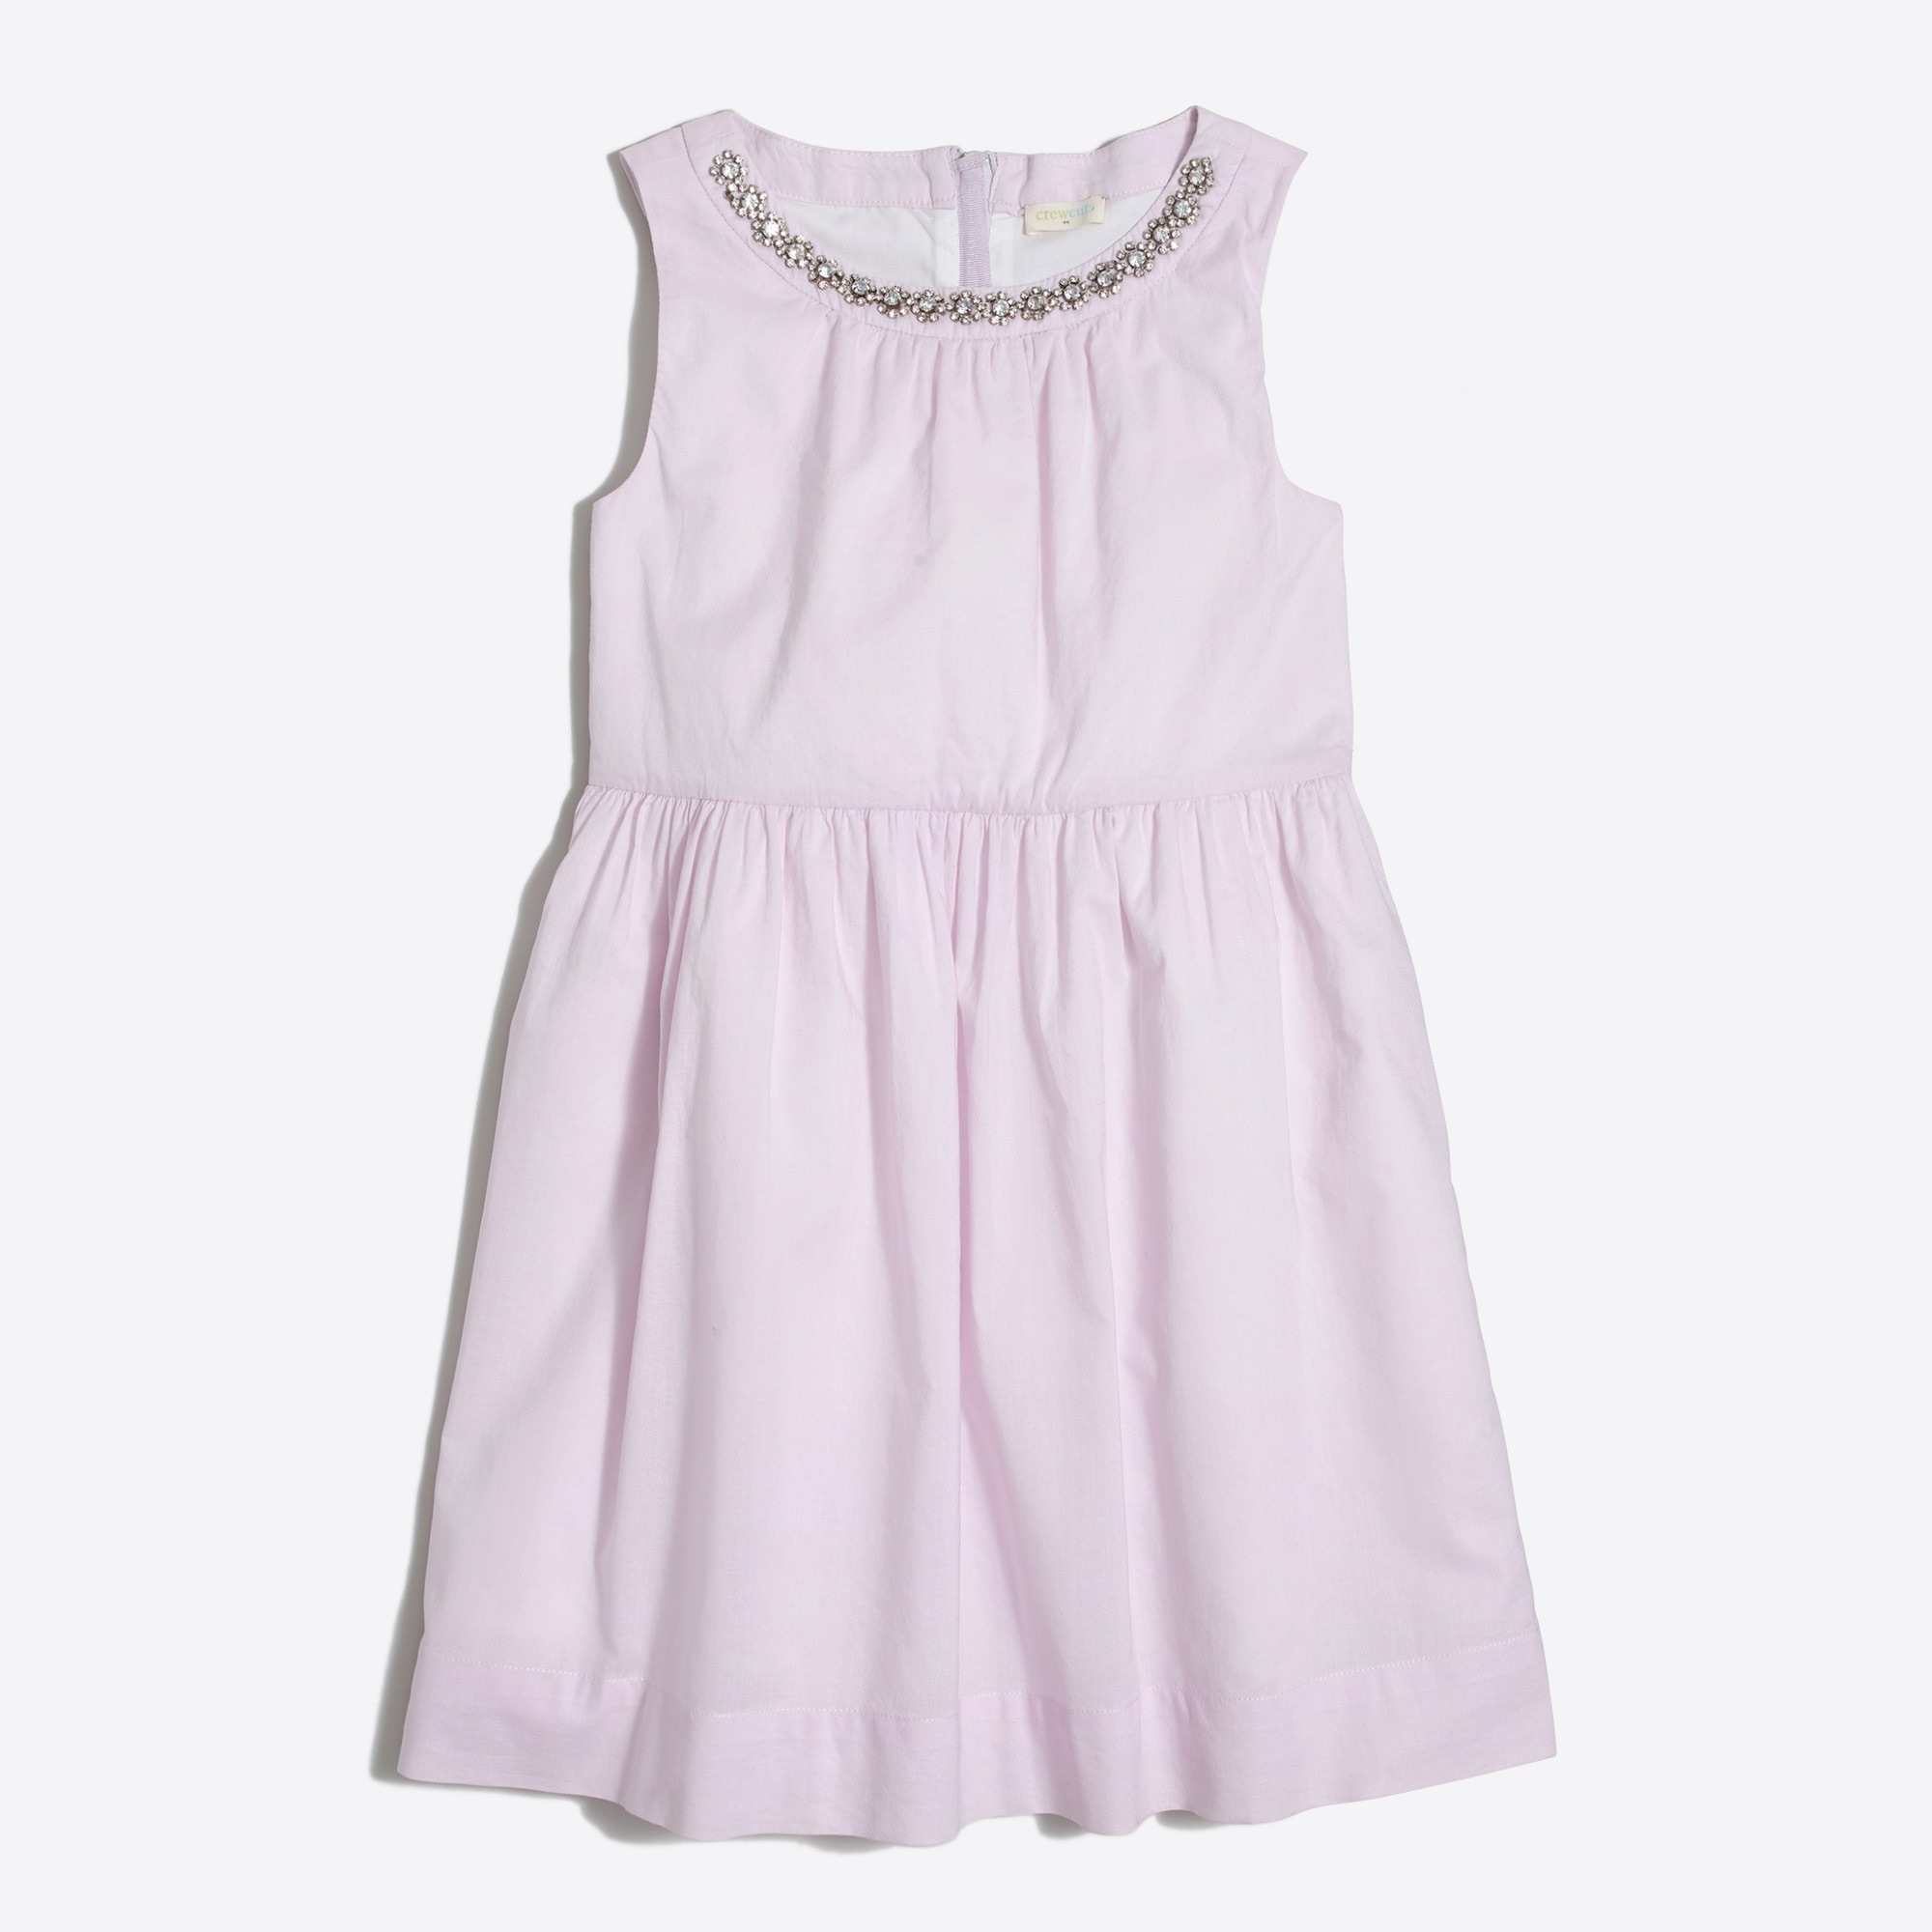 Image 1 for Girls' necklace dress